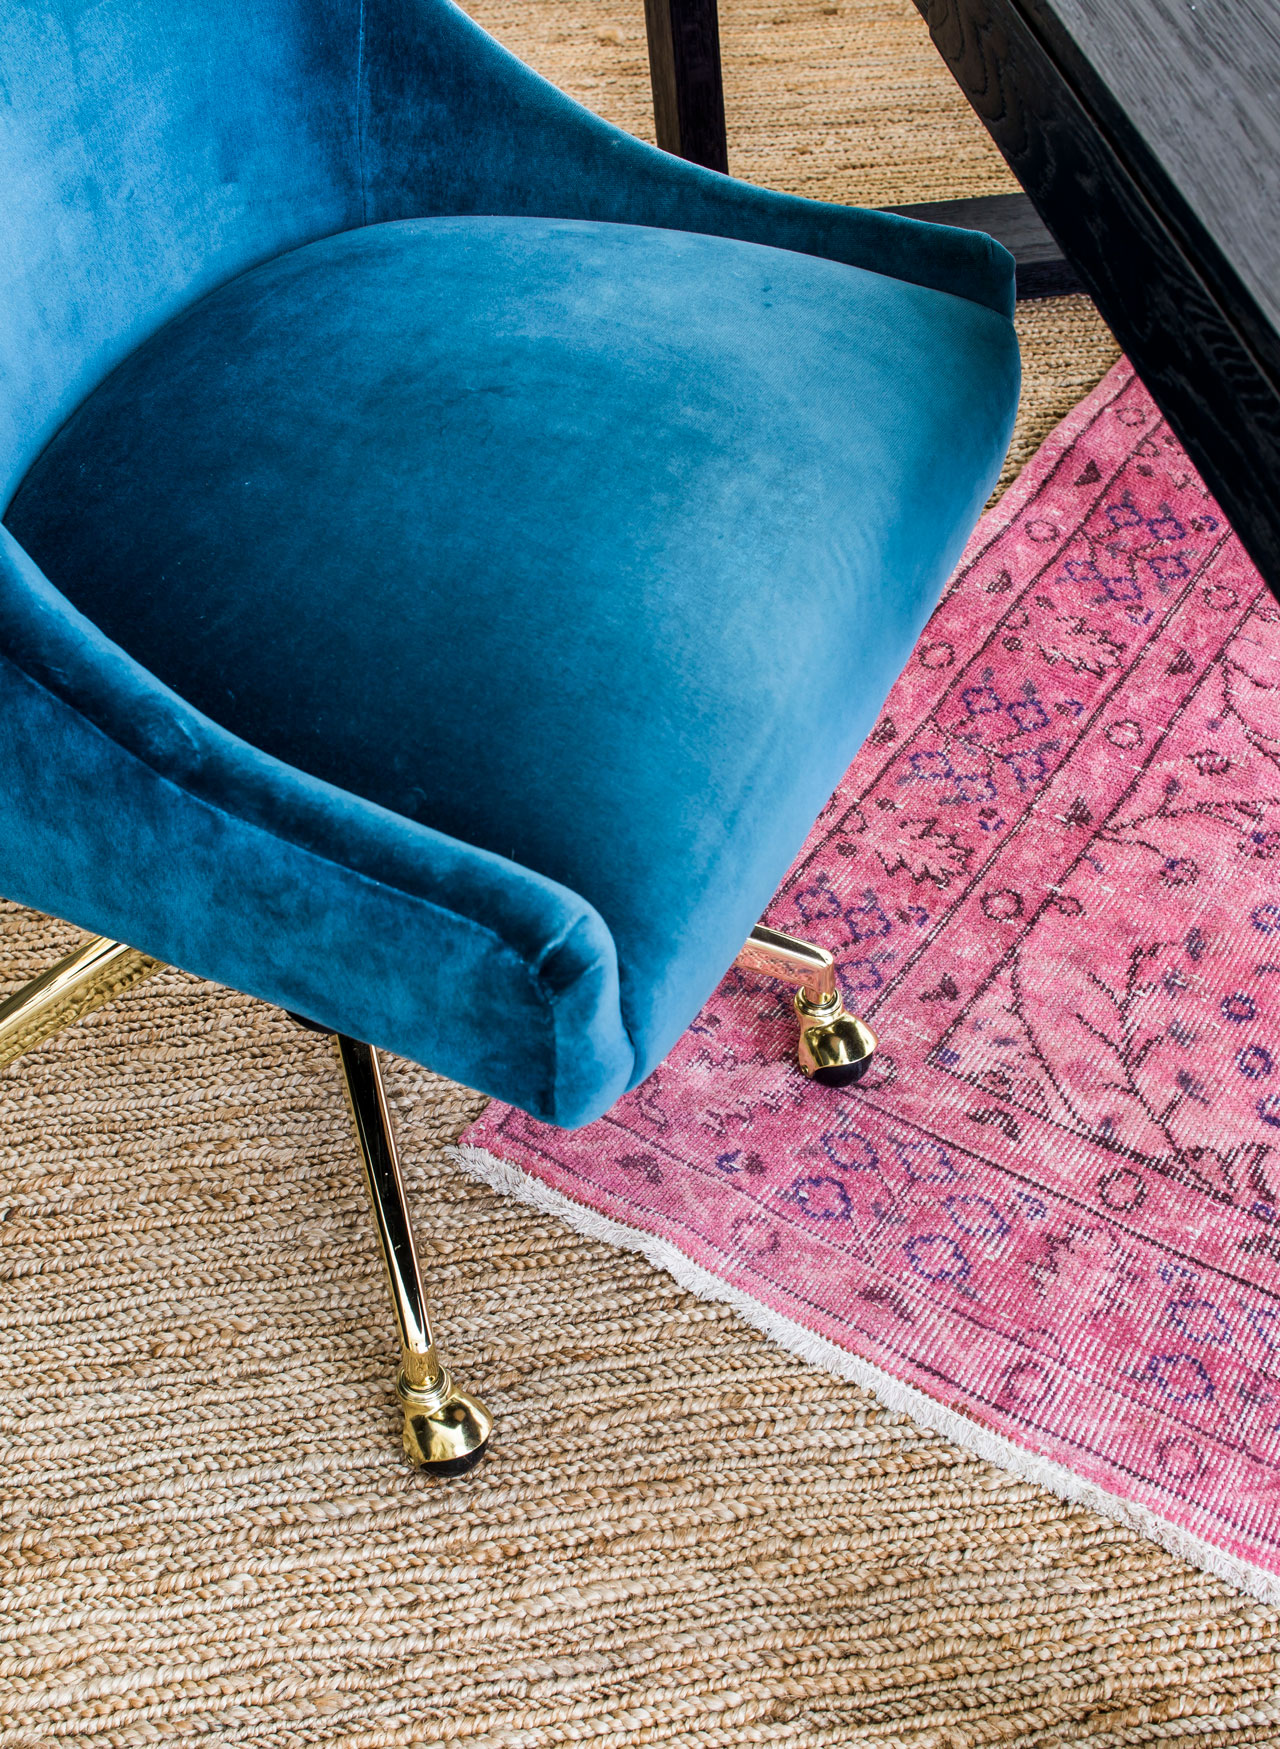 Velvet upholstered desk chair on layered jute and pink area rugs in home office